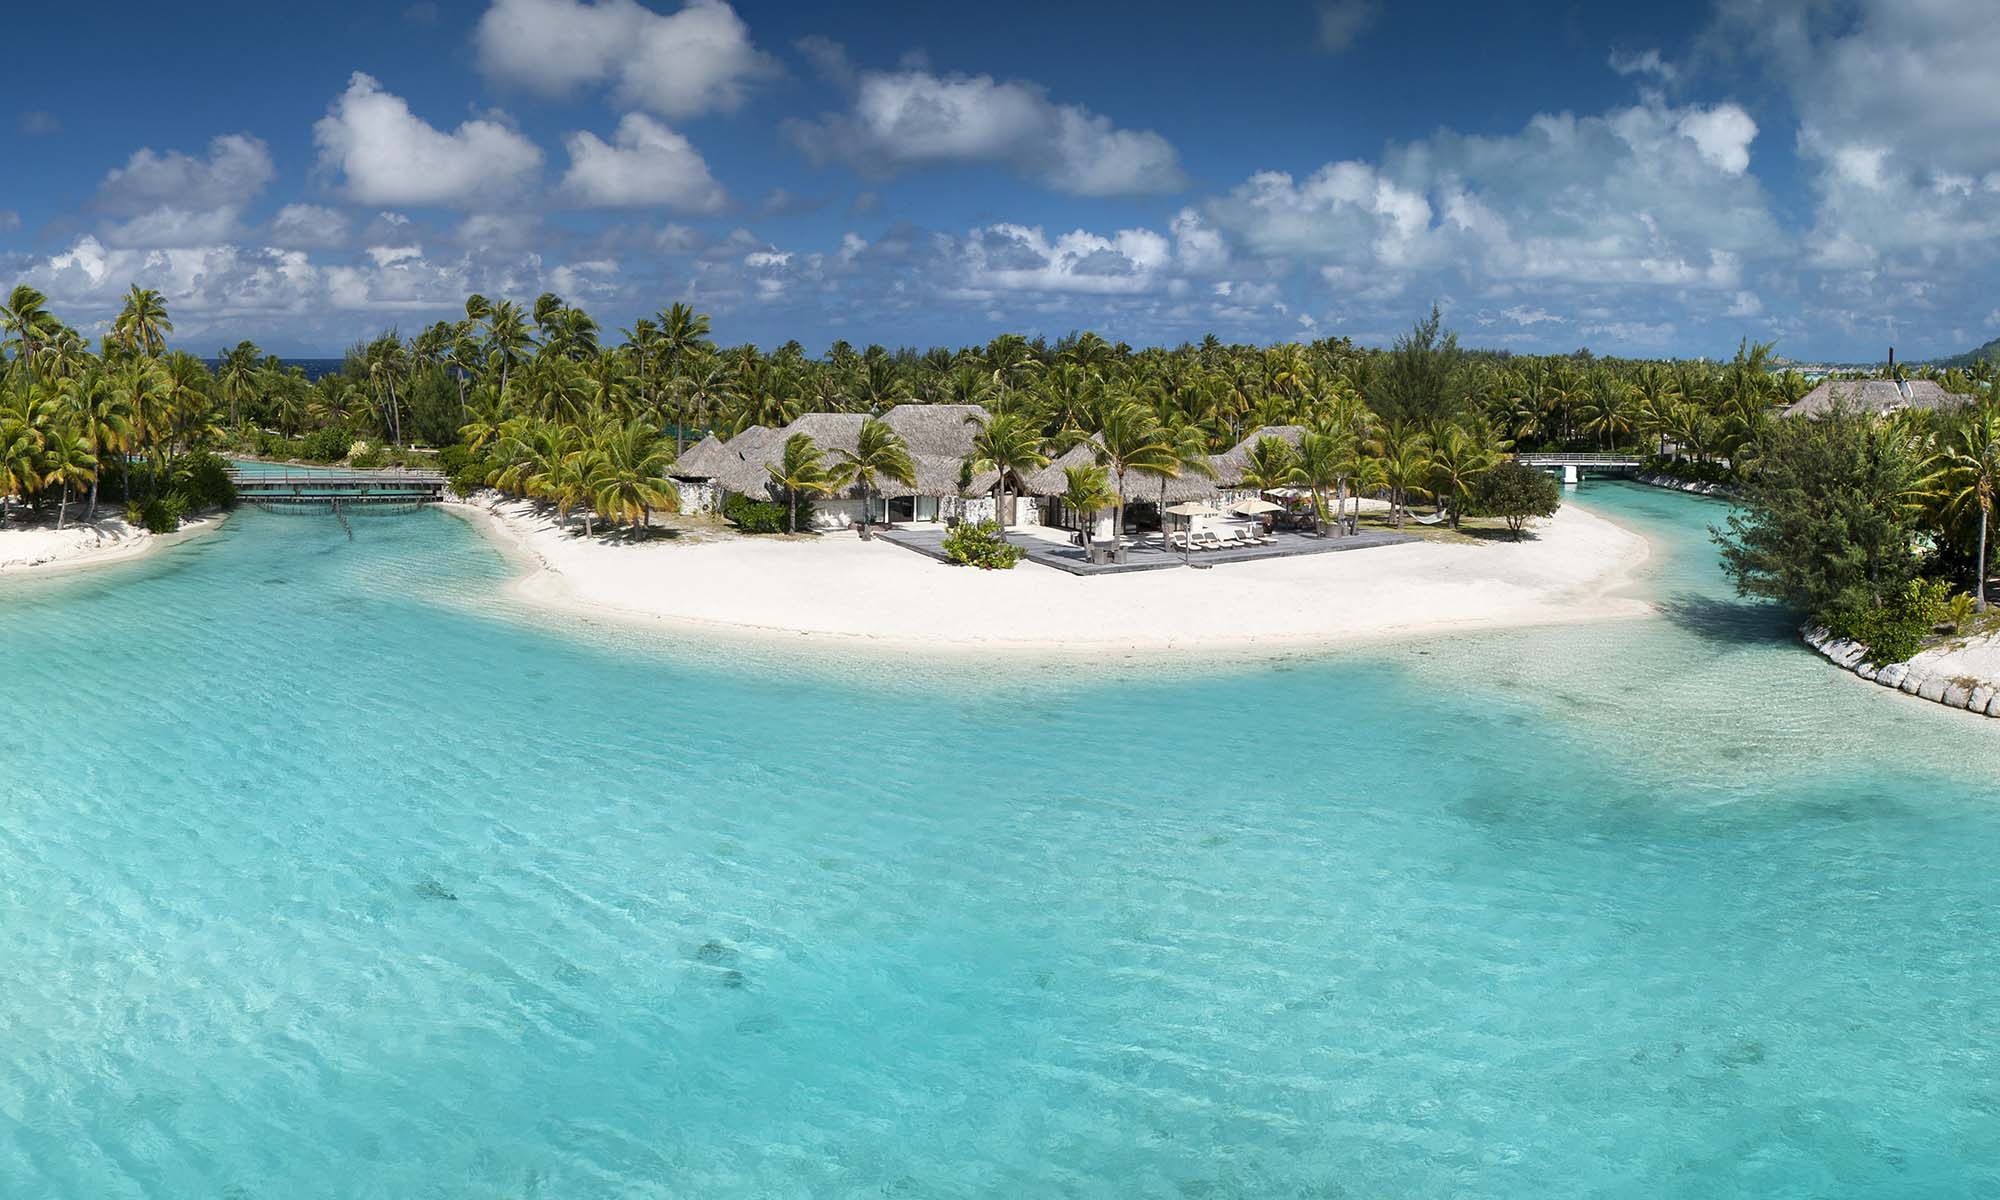 St Regis Bora Bora Resort, 3-Bedroom Royal Estate Villa